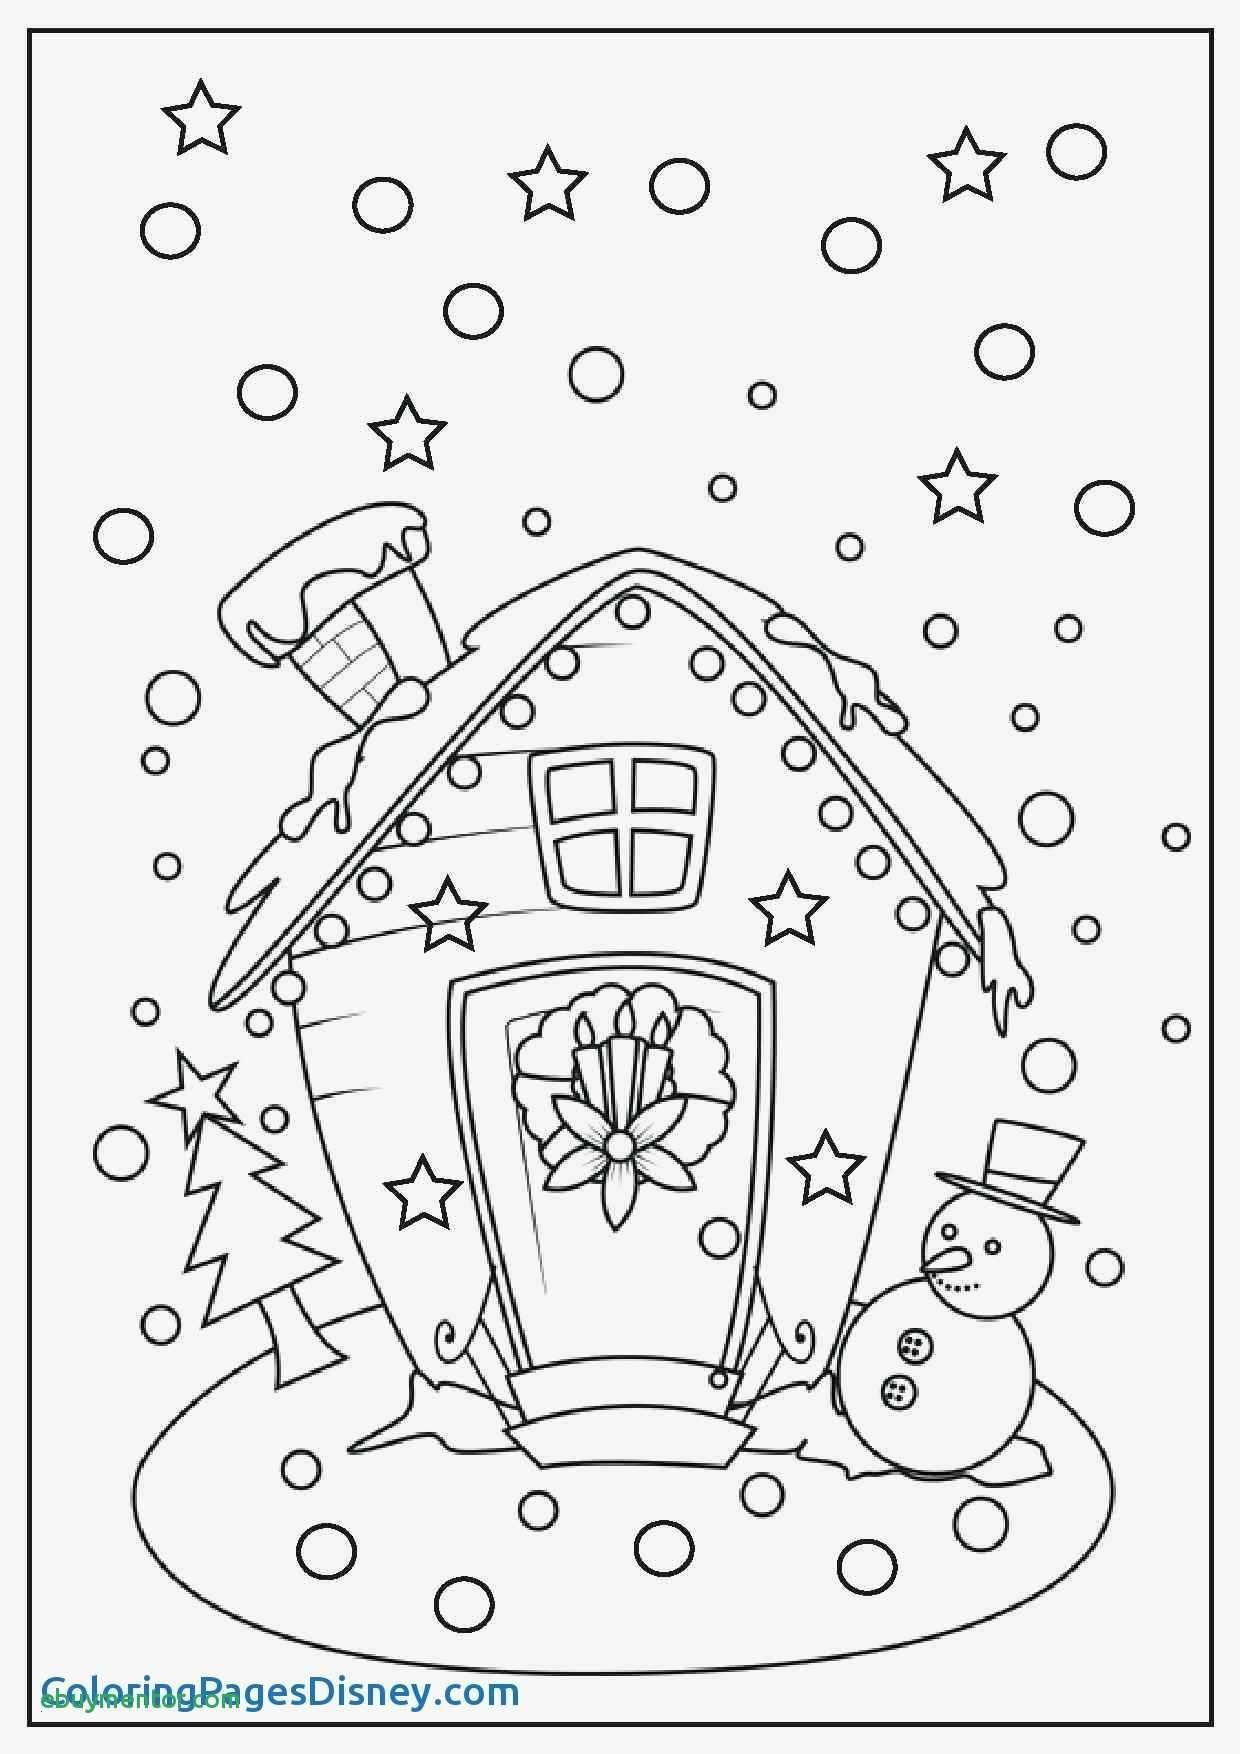 Mini Maus Ausmalbilder Genial Coloring Pages Free Printable Coloring Pages for Children that You Bilder